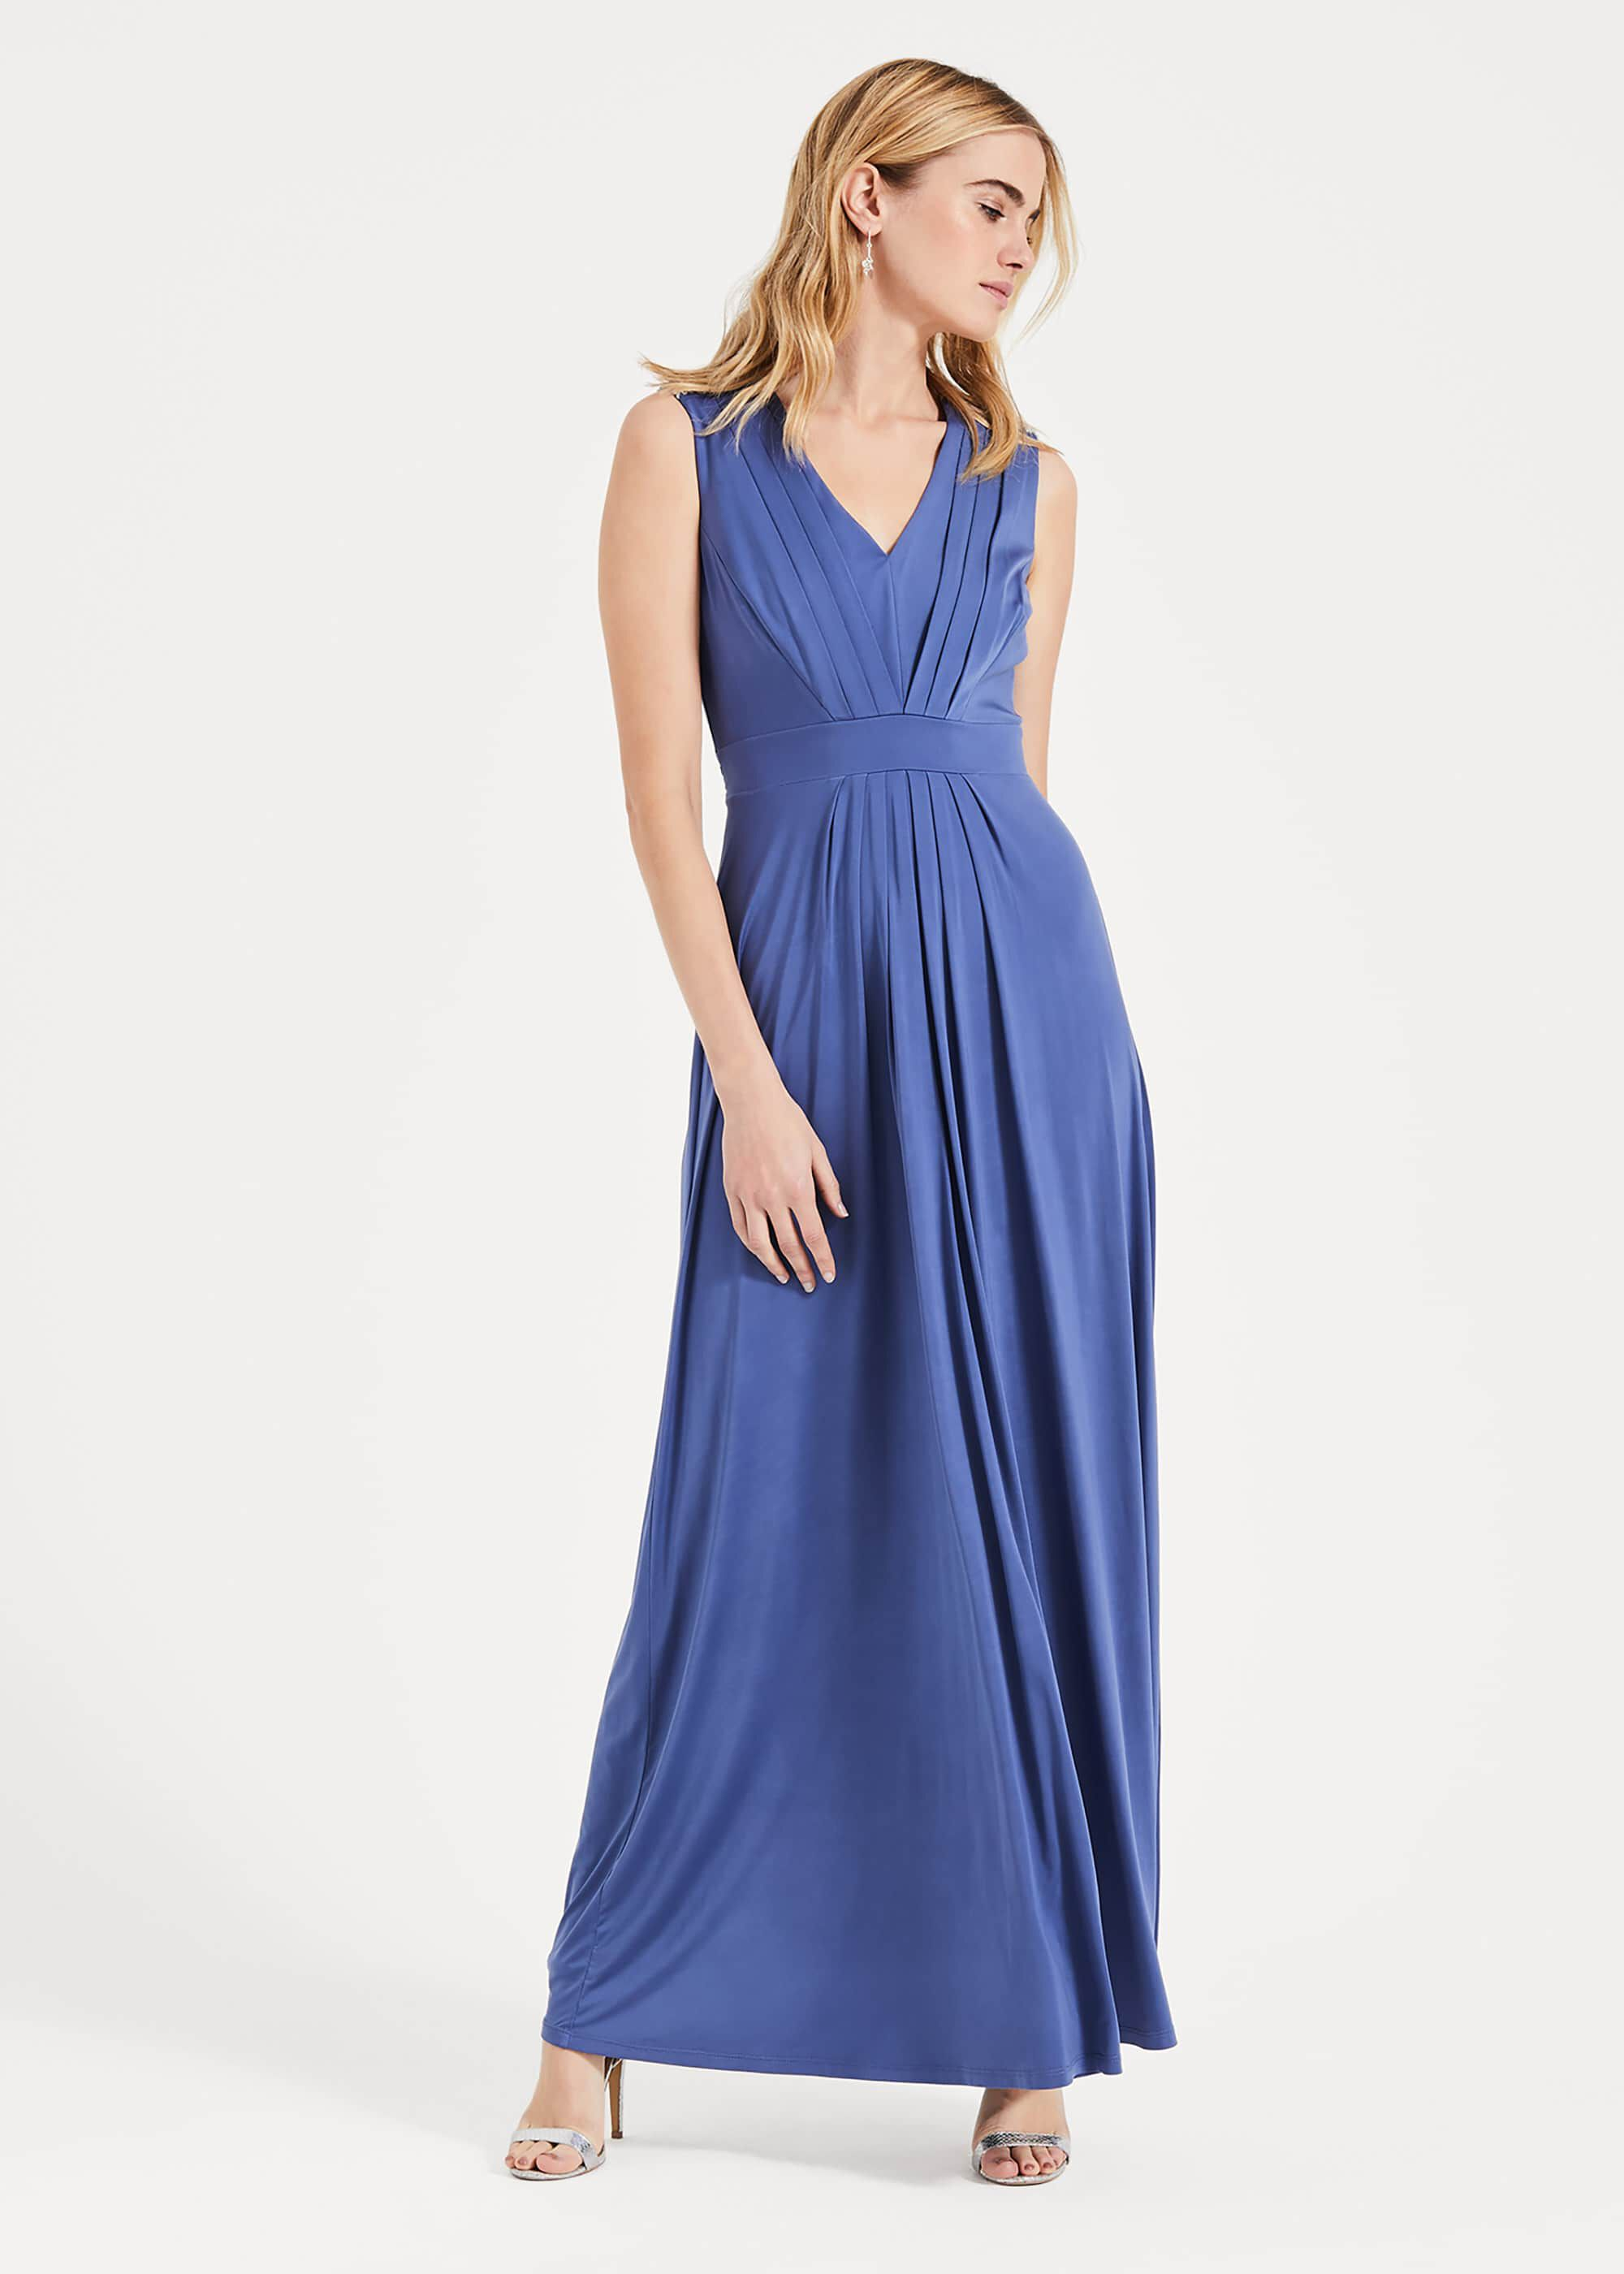 Phase Eight Tomasi Beaded Shoulder Dress, Blue, Maxi, Occasion Dress